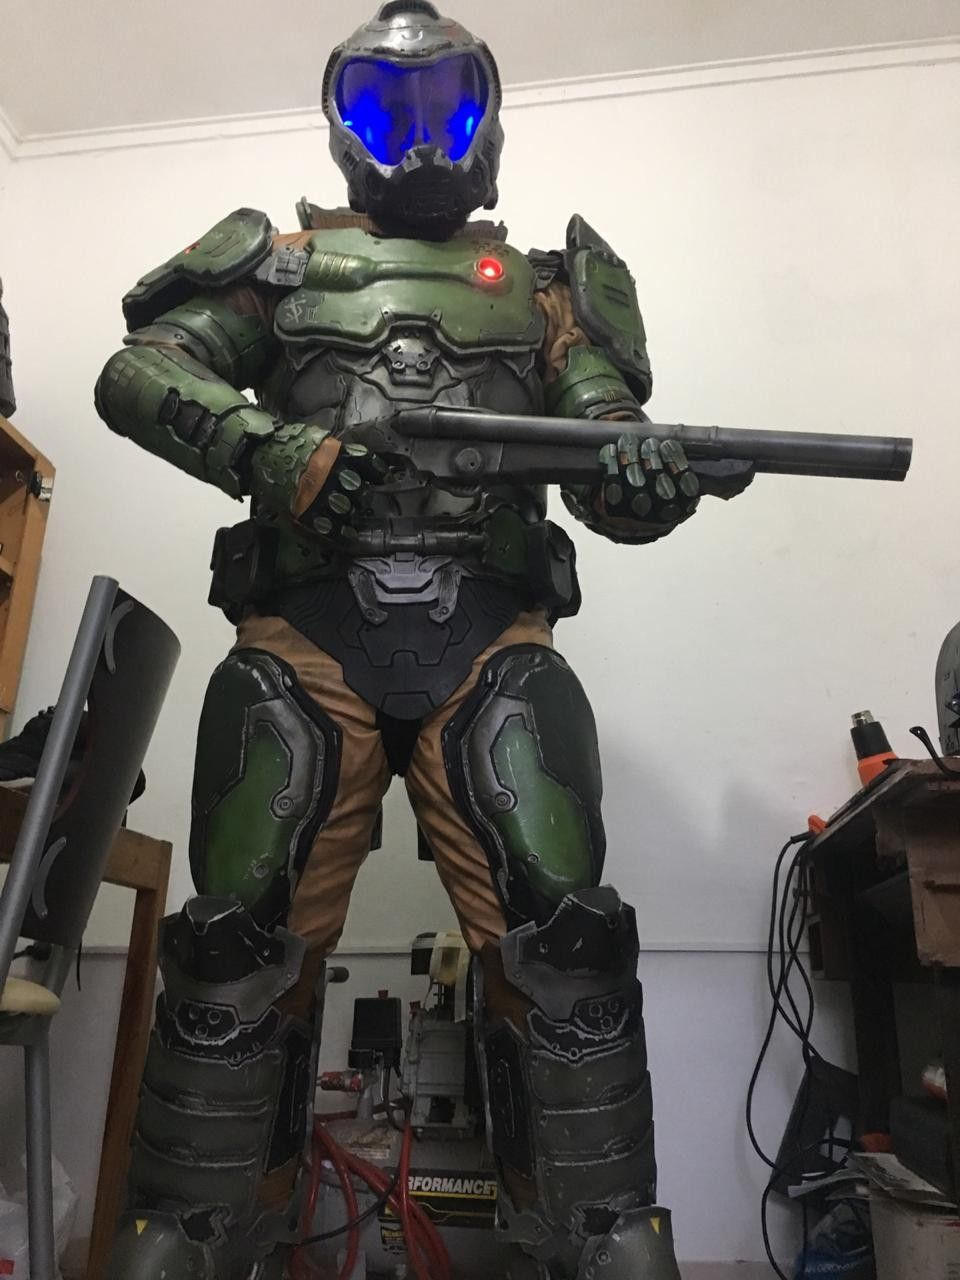 Pin By William Rusler On Doomguy Doom Slayer Cosplay